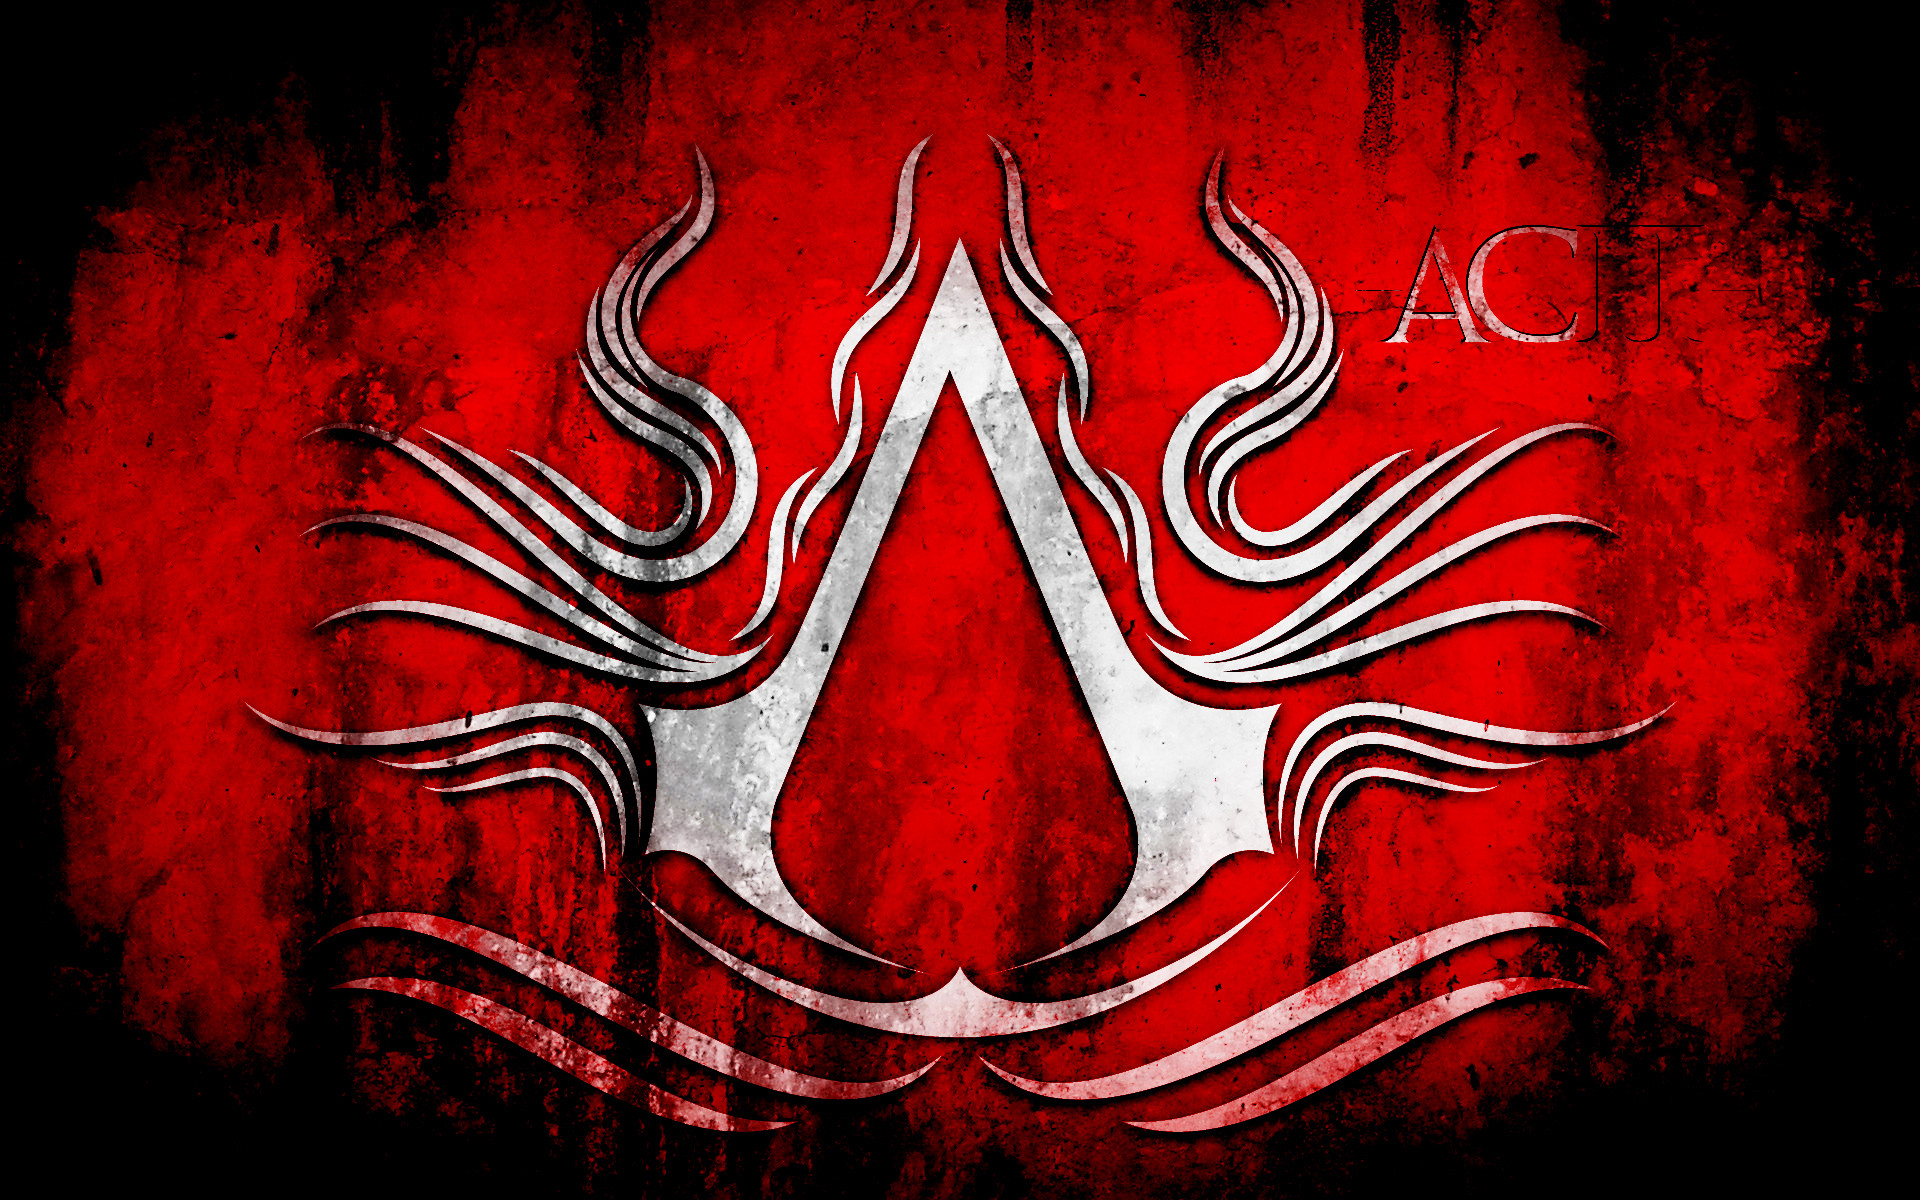 assassins creed black flag logo red and black images